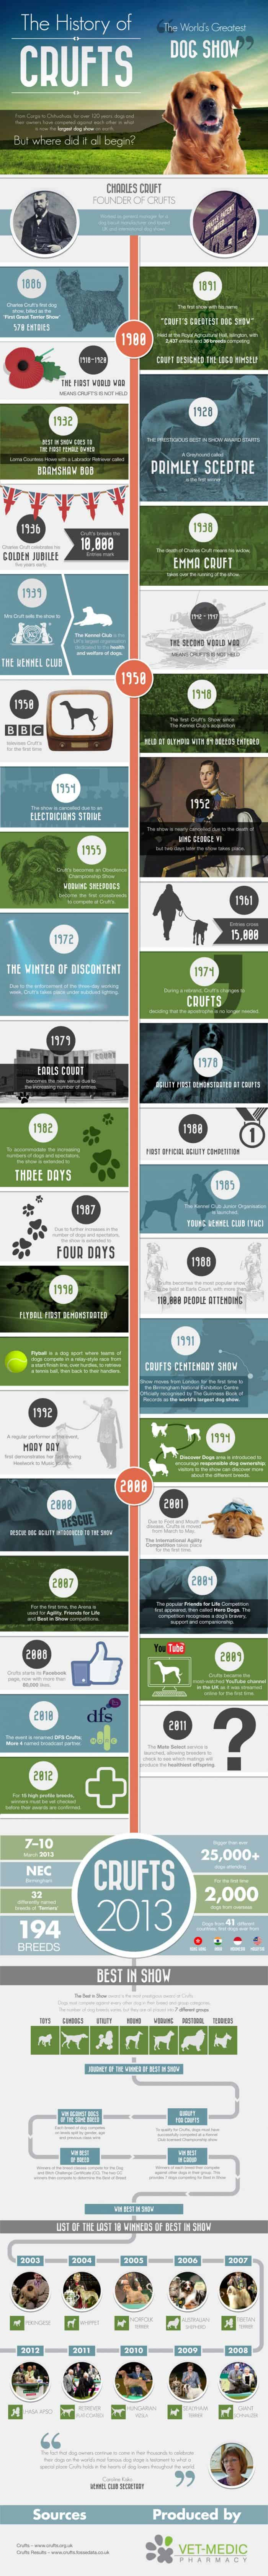 History of crufts infographic